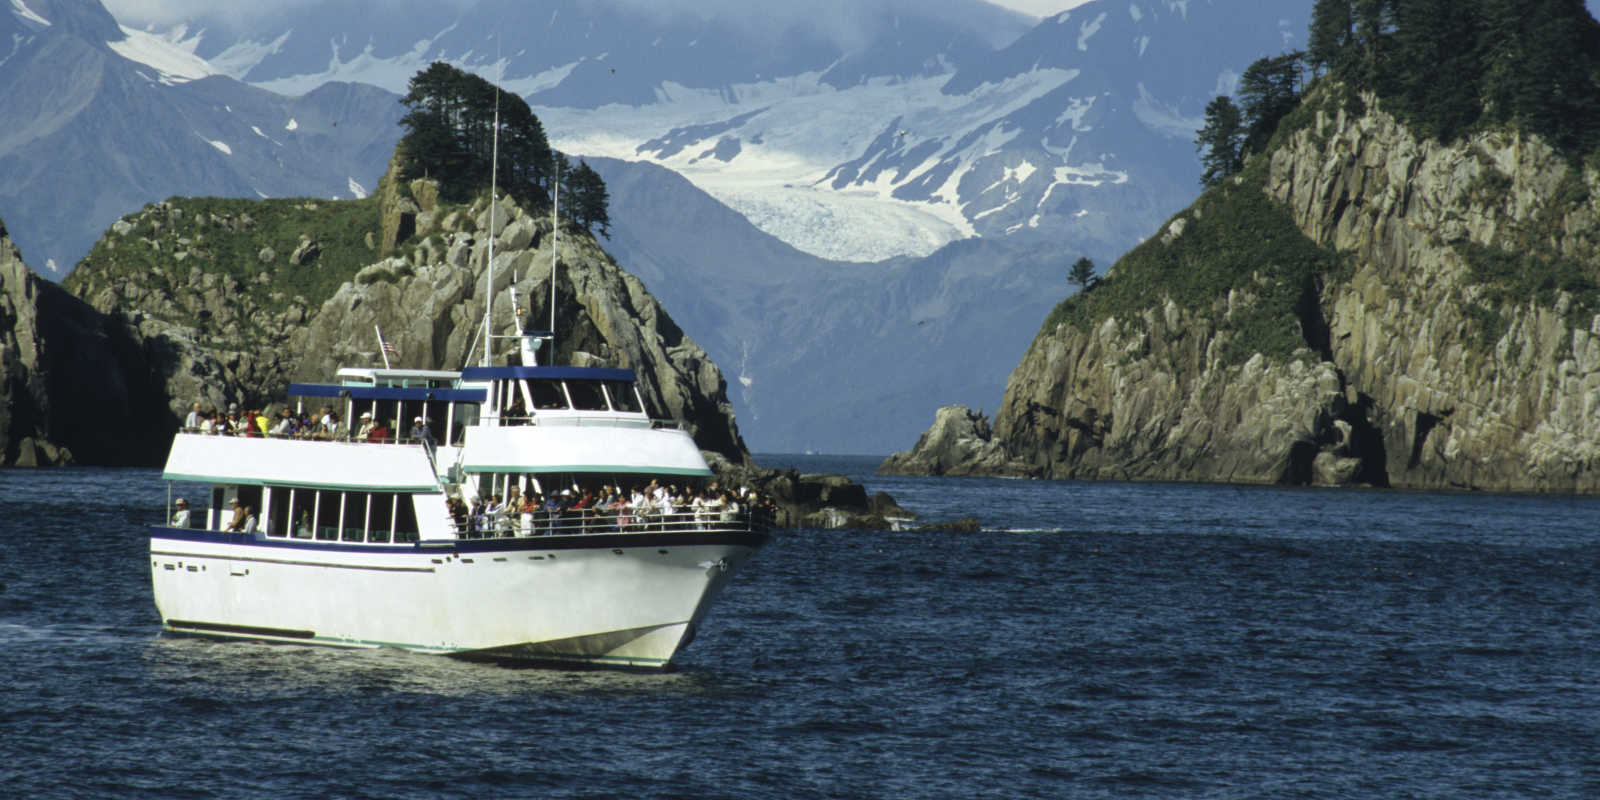 Kenai Fjords tours day cruise in the national park